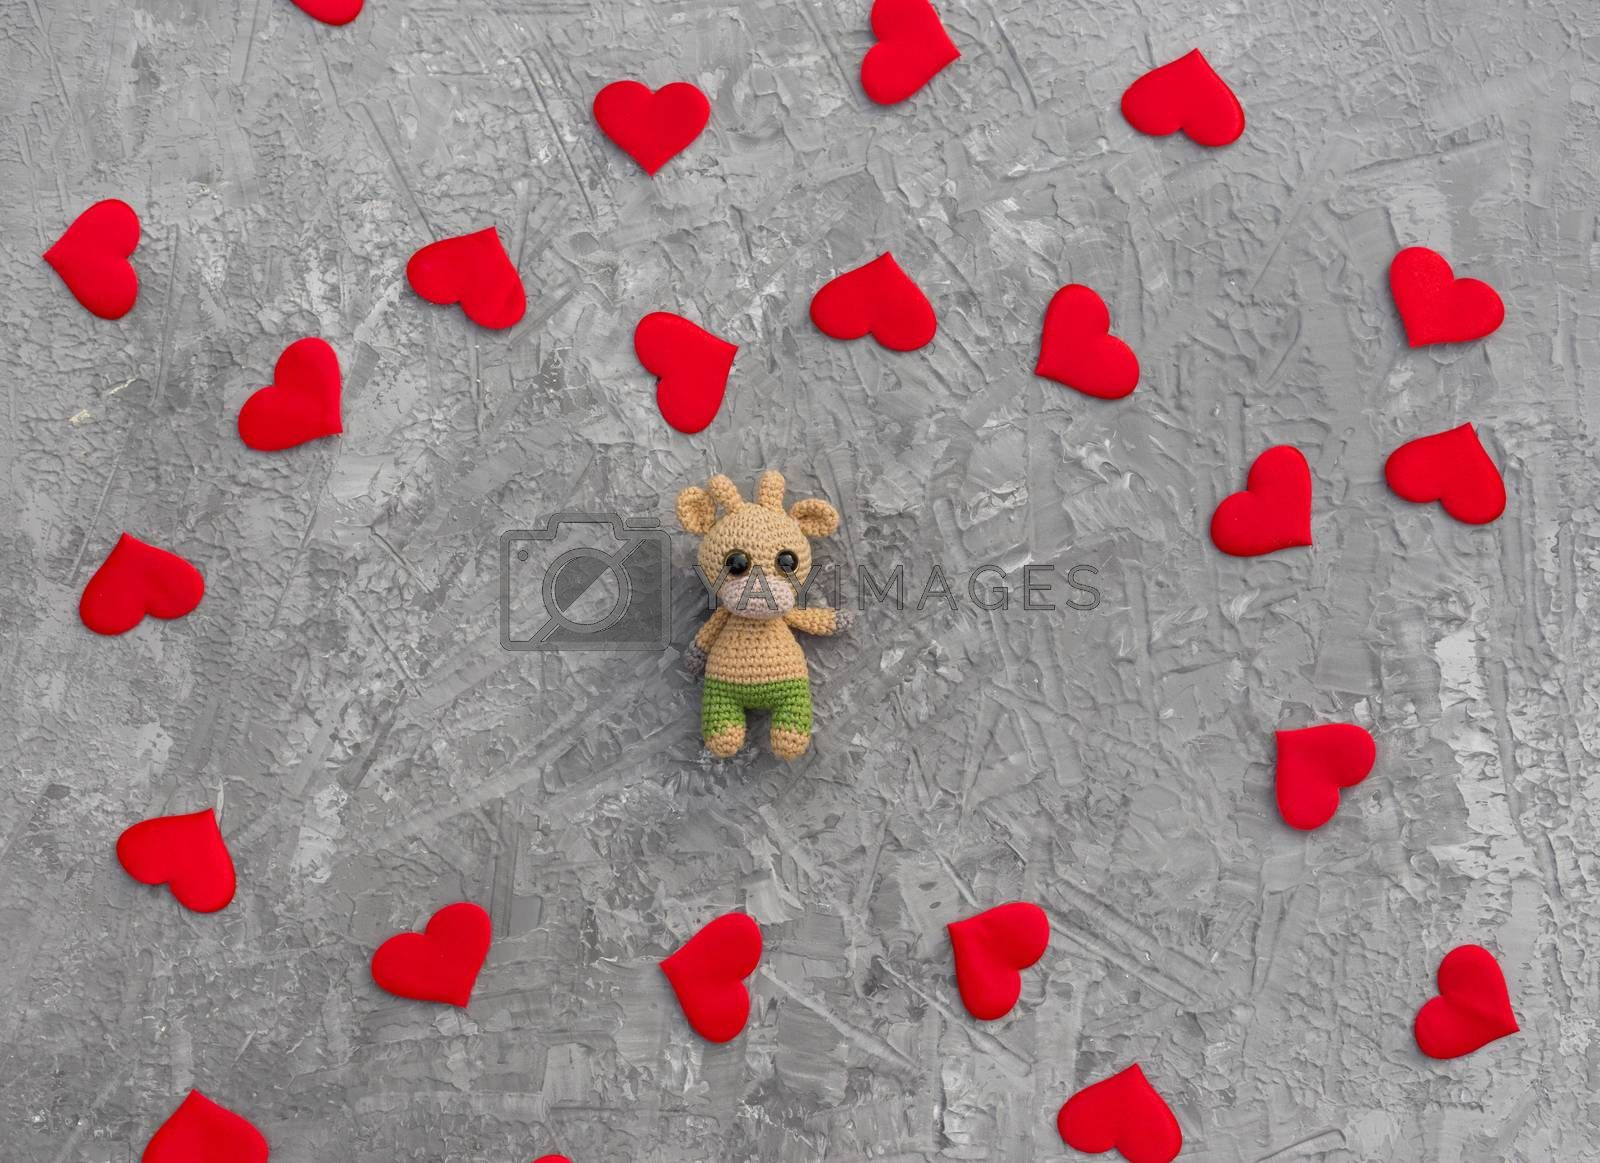 Romantic Christmas background with generic crocheted homemade toy bull symbol of the year